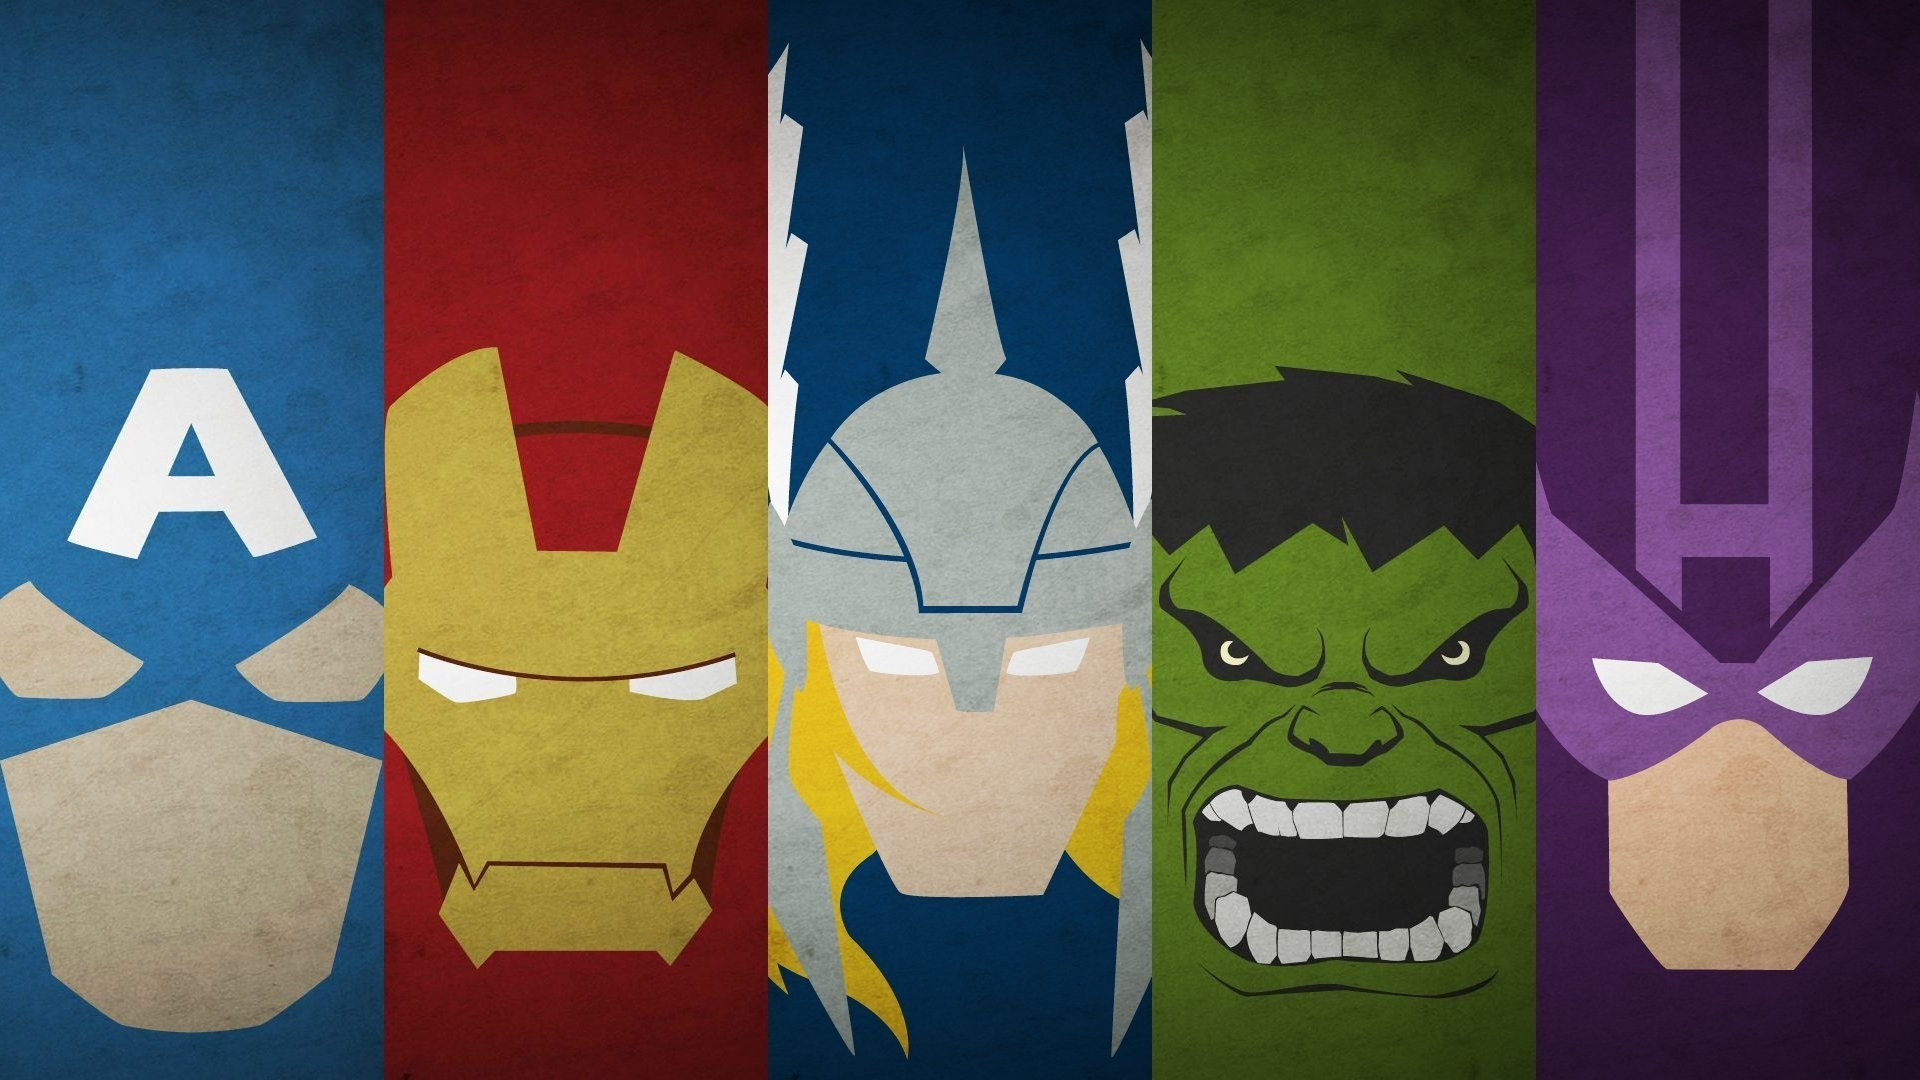 Res: 1920x1080, 50 Minimalist HD Avengers Wallpapers to get you ready for Infinity War